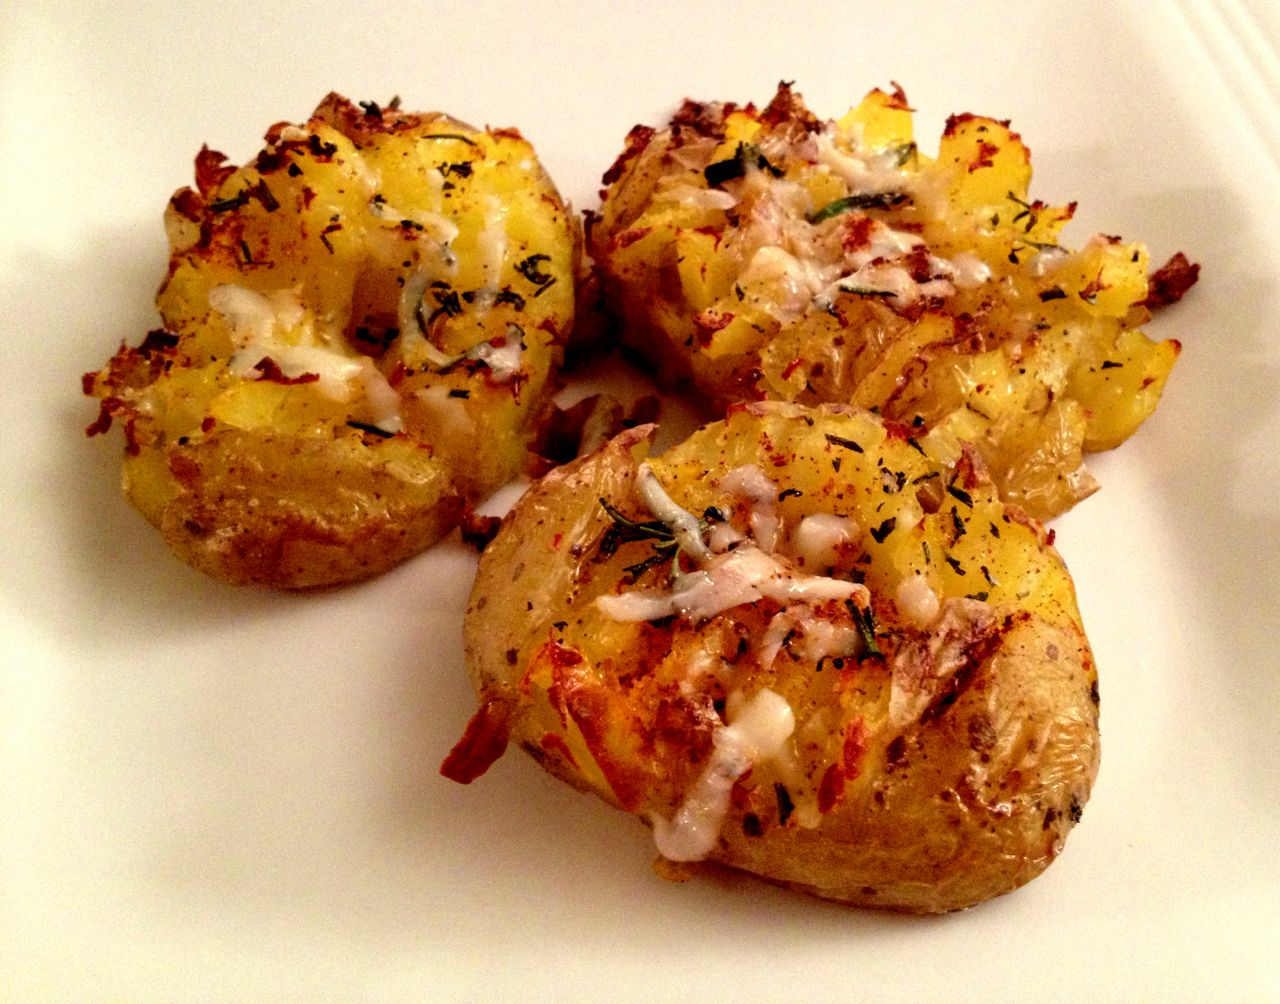 smashed-roasted-potatoes-with-rosemary.jpg?t=1364492632000# ...